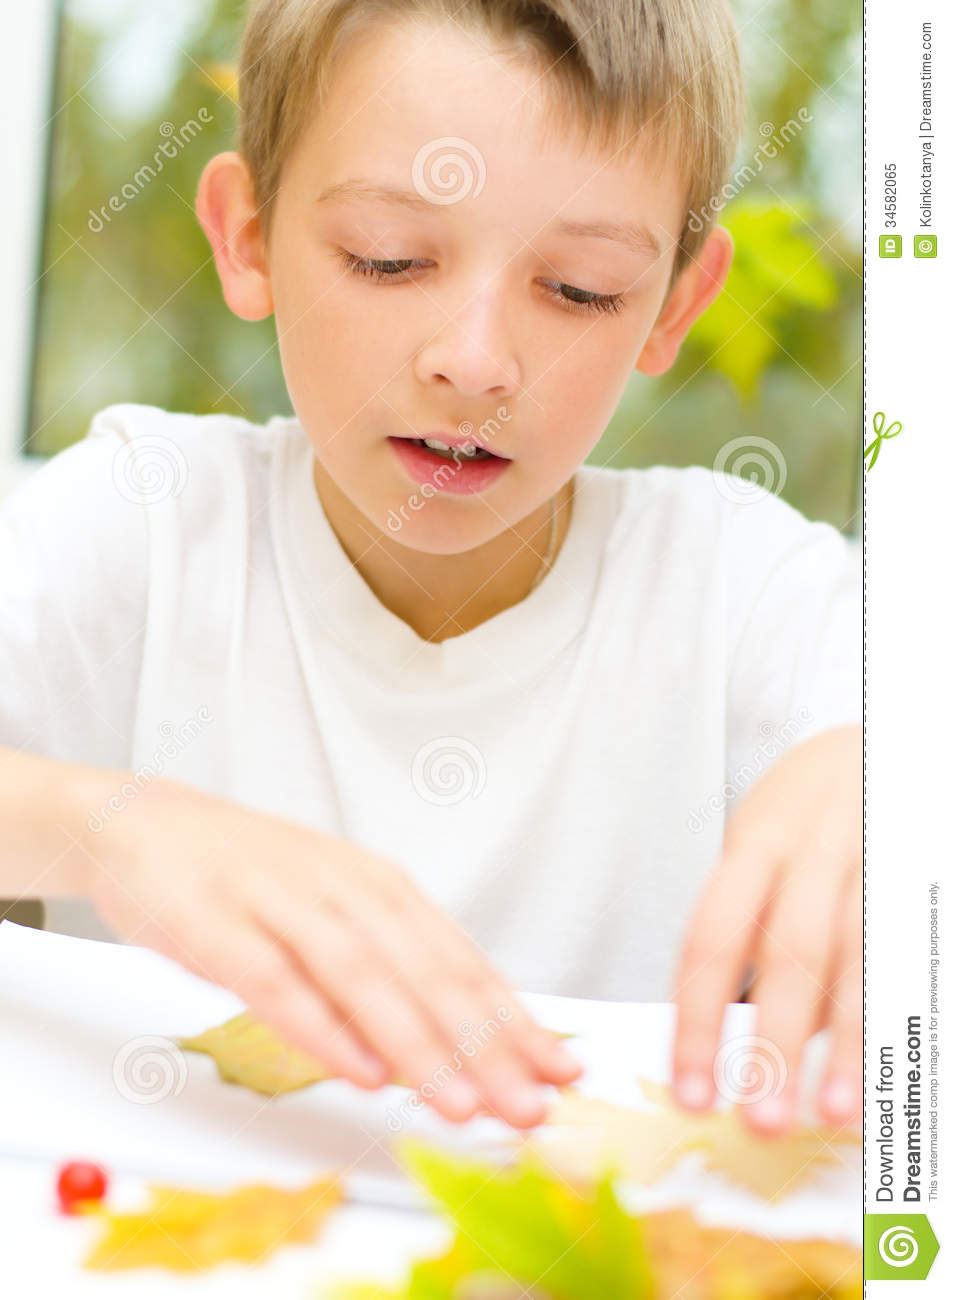 Arts and crafts royalty free stock photo image 34582065 for Boys arts and crafts